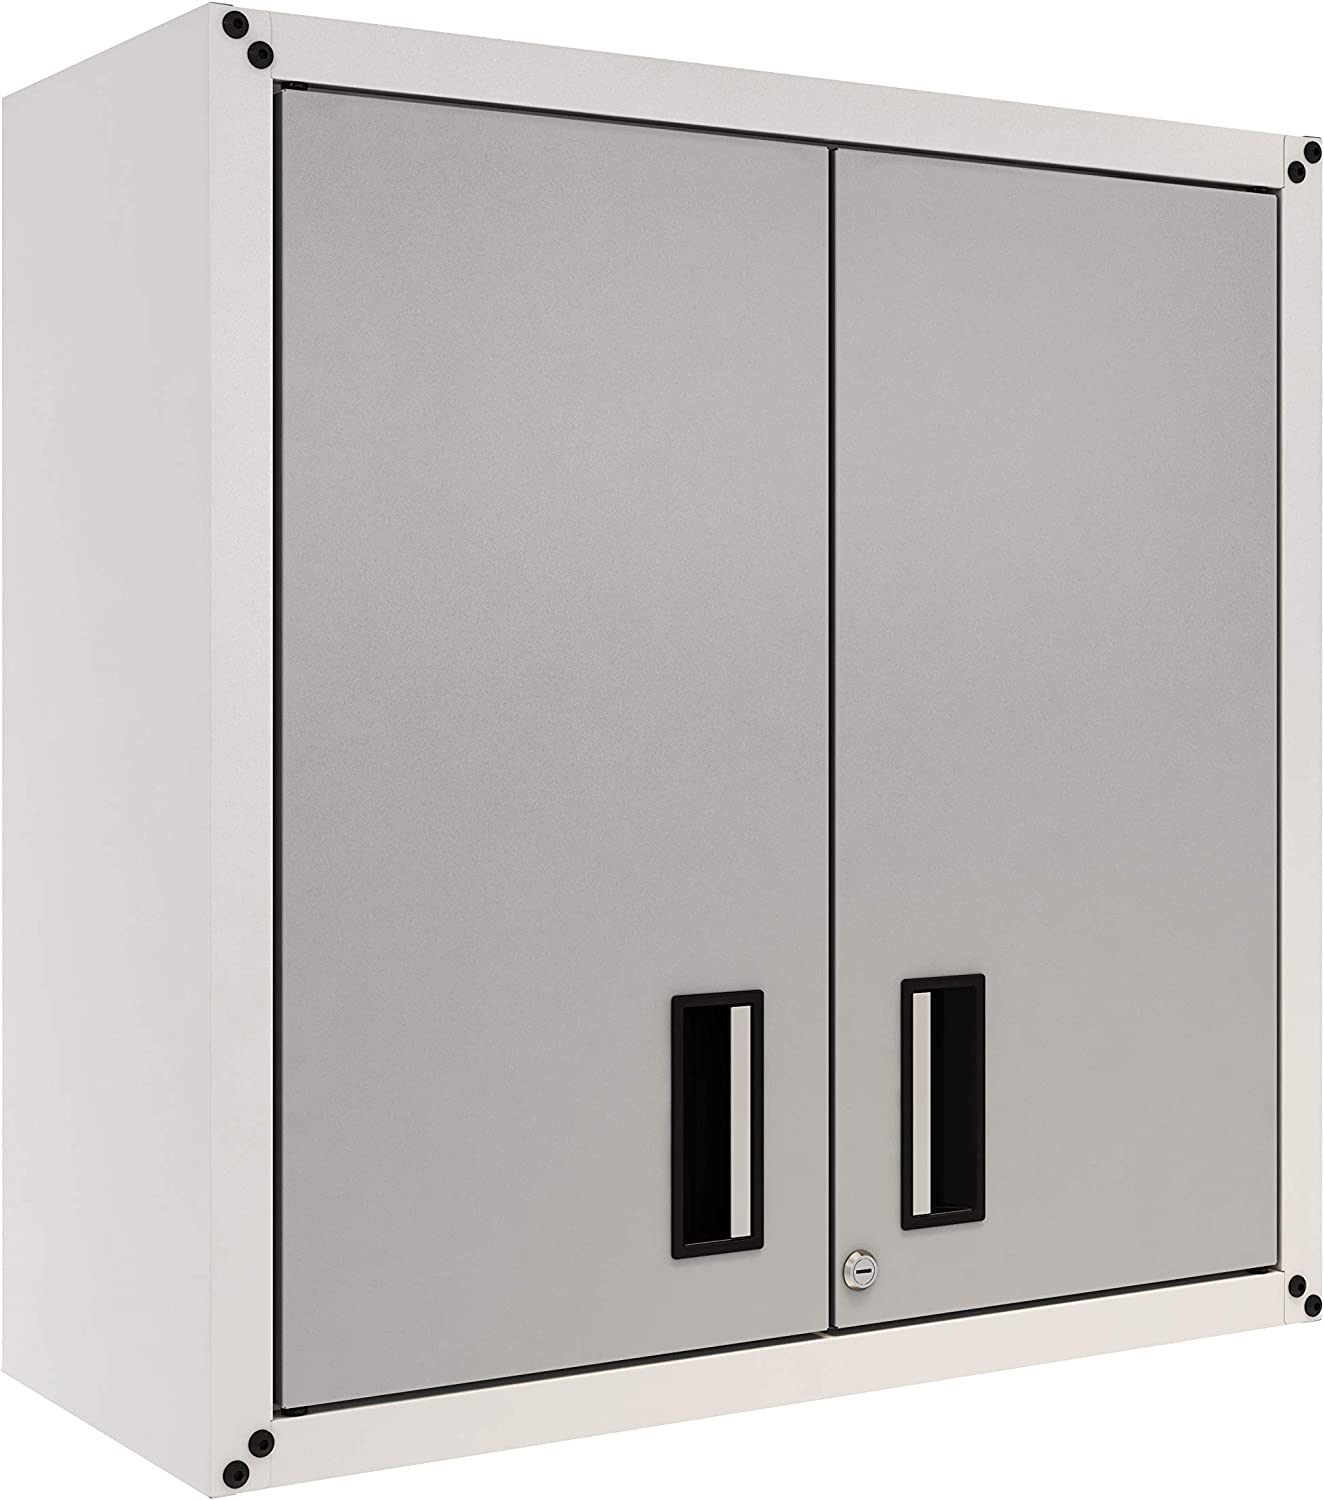 itbe for Home Ready-to-Assemble Wall Steel Cabinet with Two Doors (White and Grey)